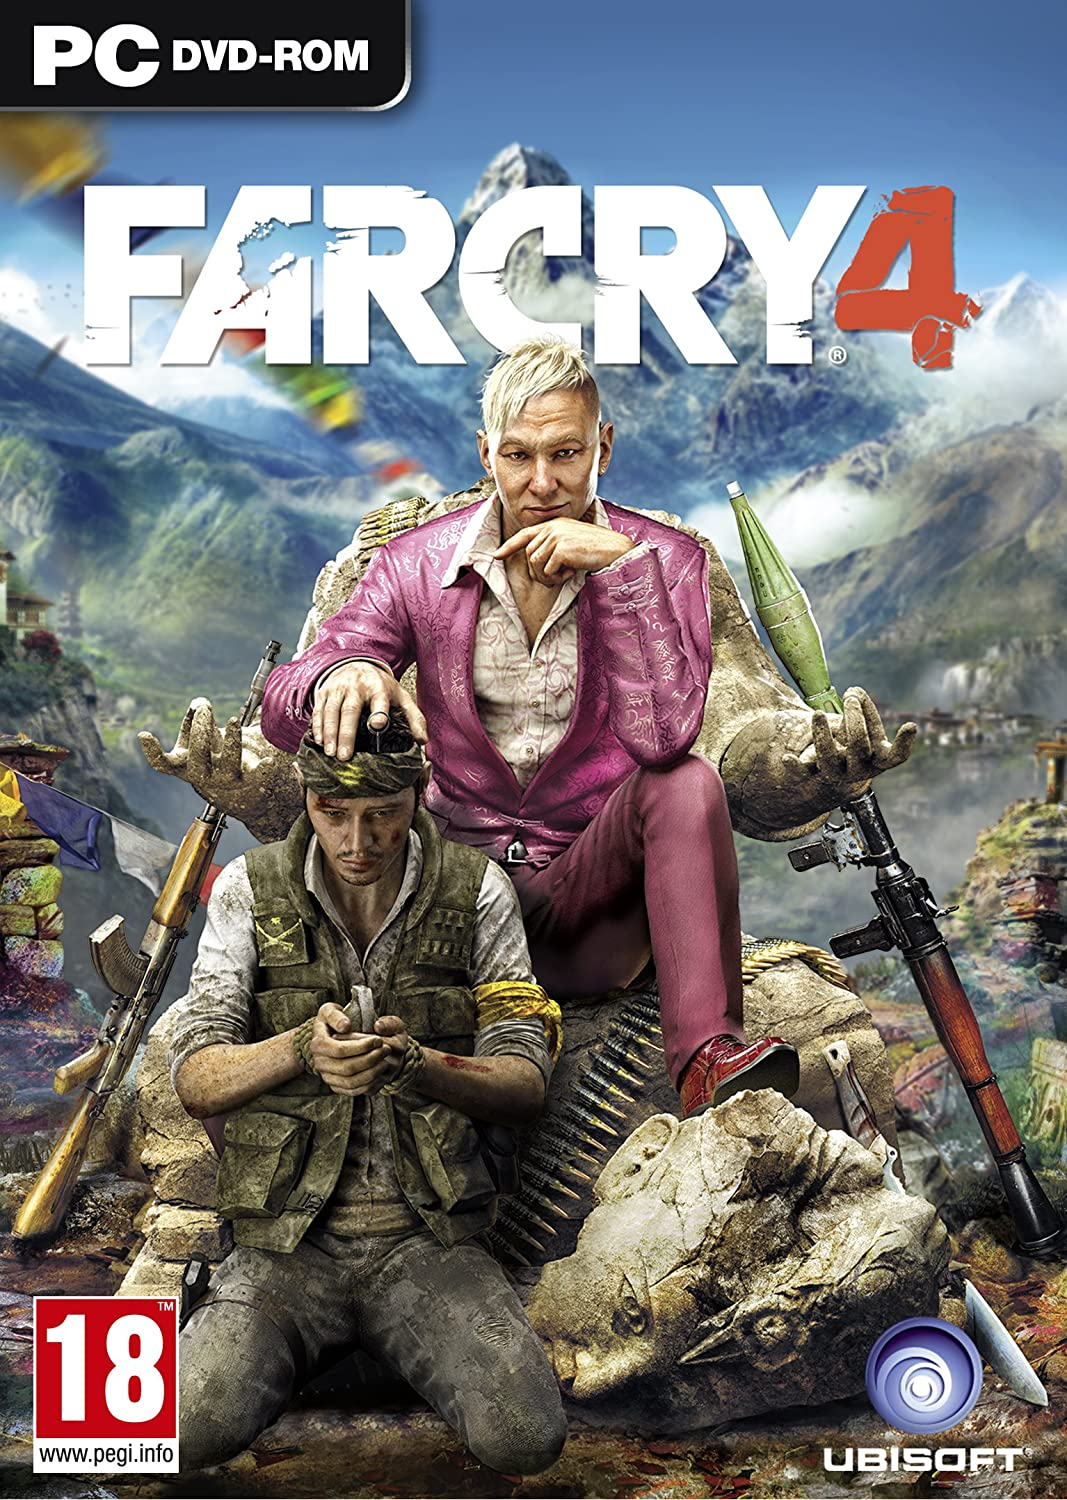 Image result for far cry 4 cover